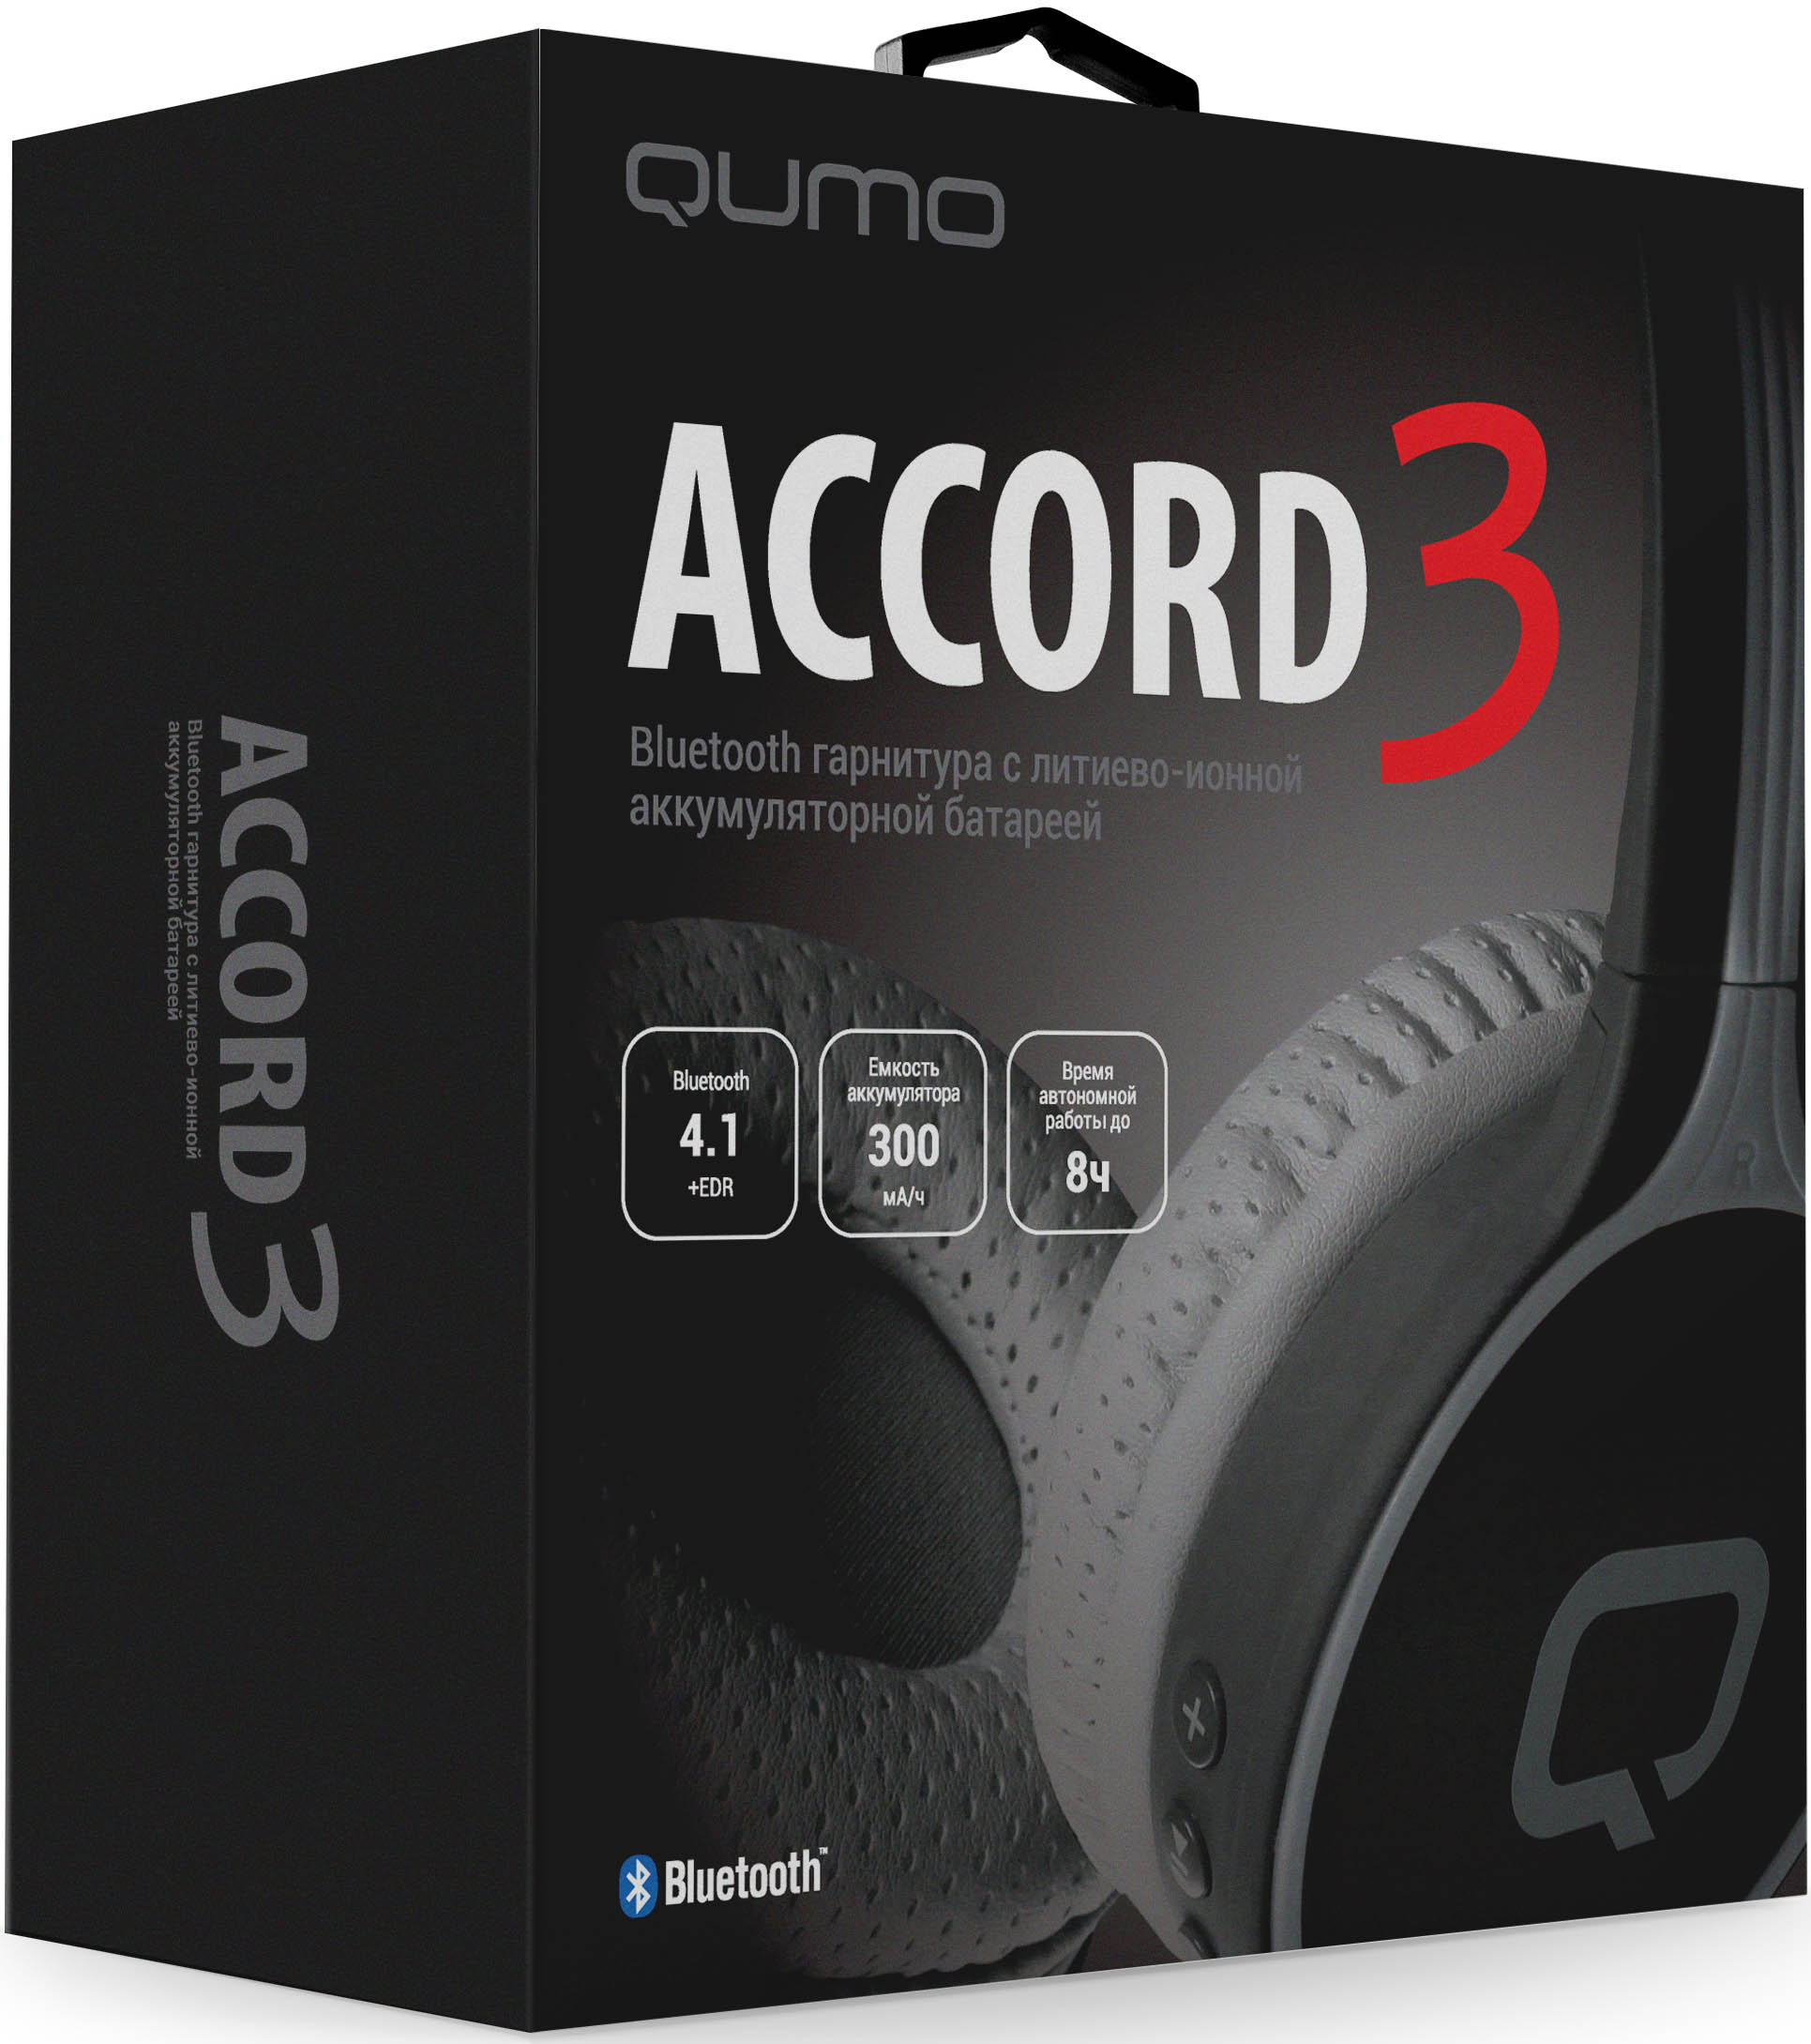 Bluetooth гарнитура Qumo Accord 3 (BT-0020) (Серые) фото